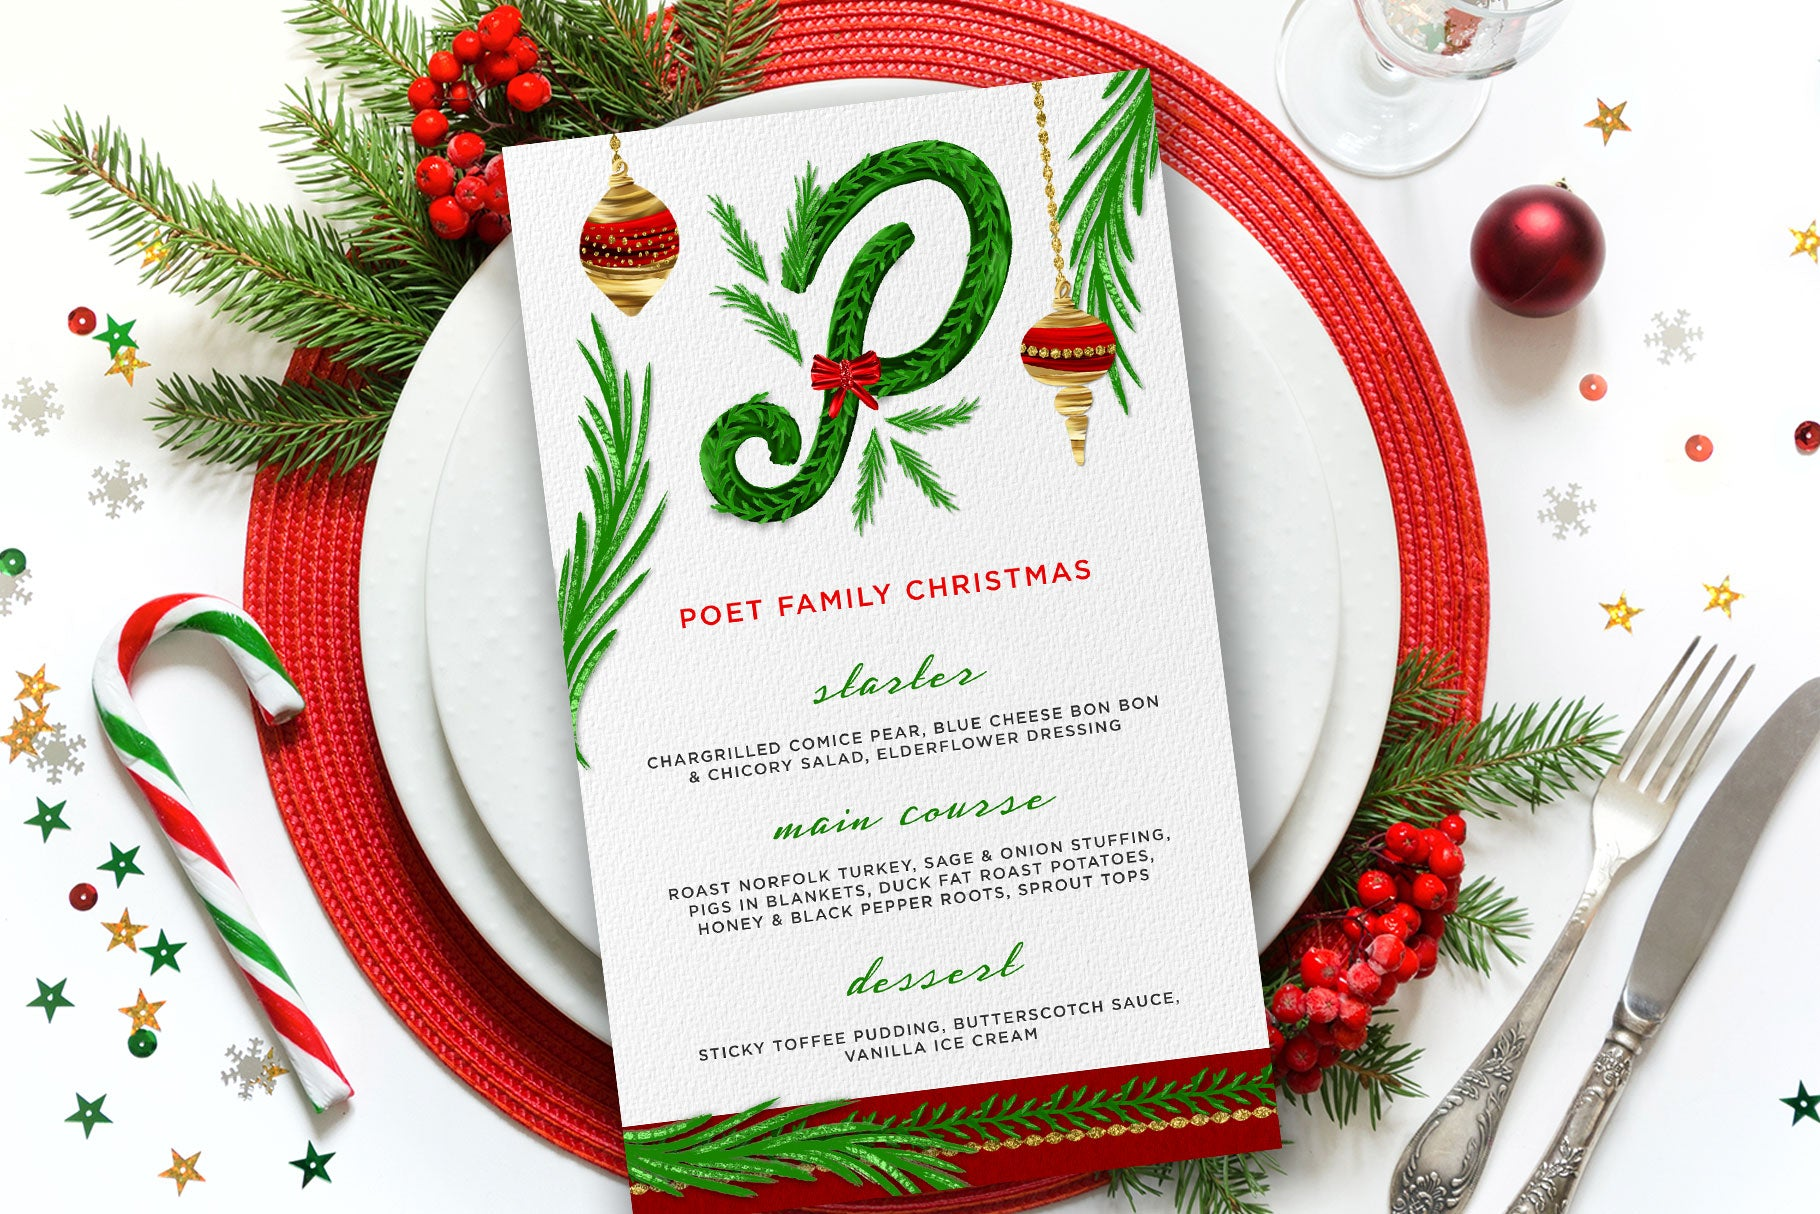 Luxe Christmas & Holiday Greenery Alphabets: christmas menu design